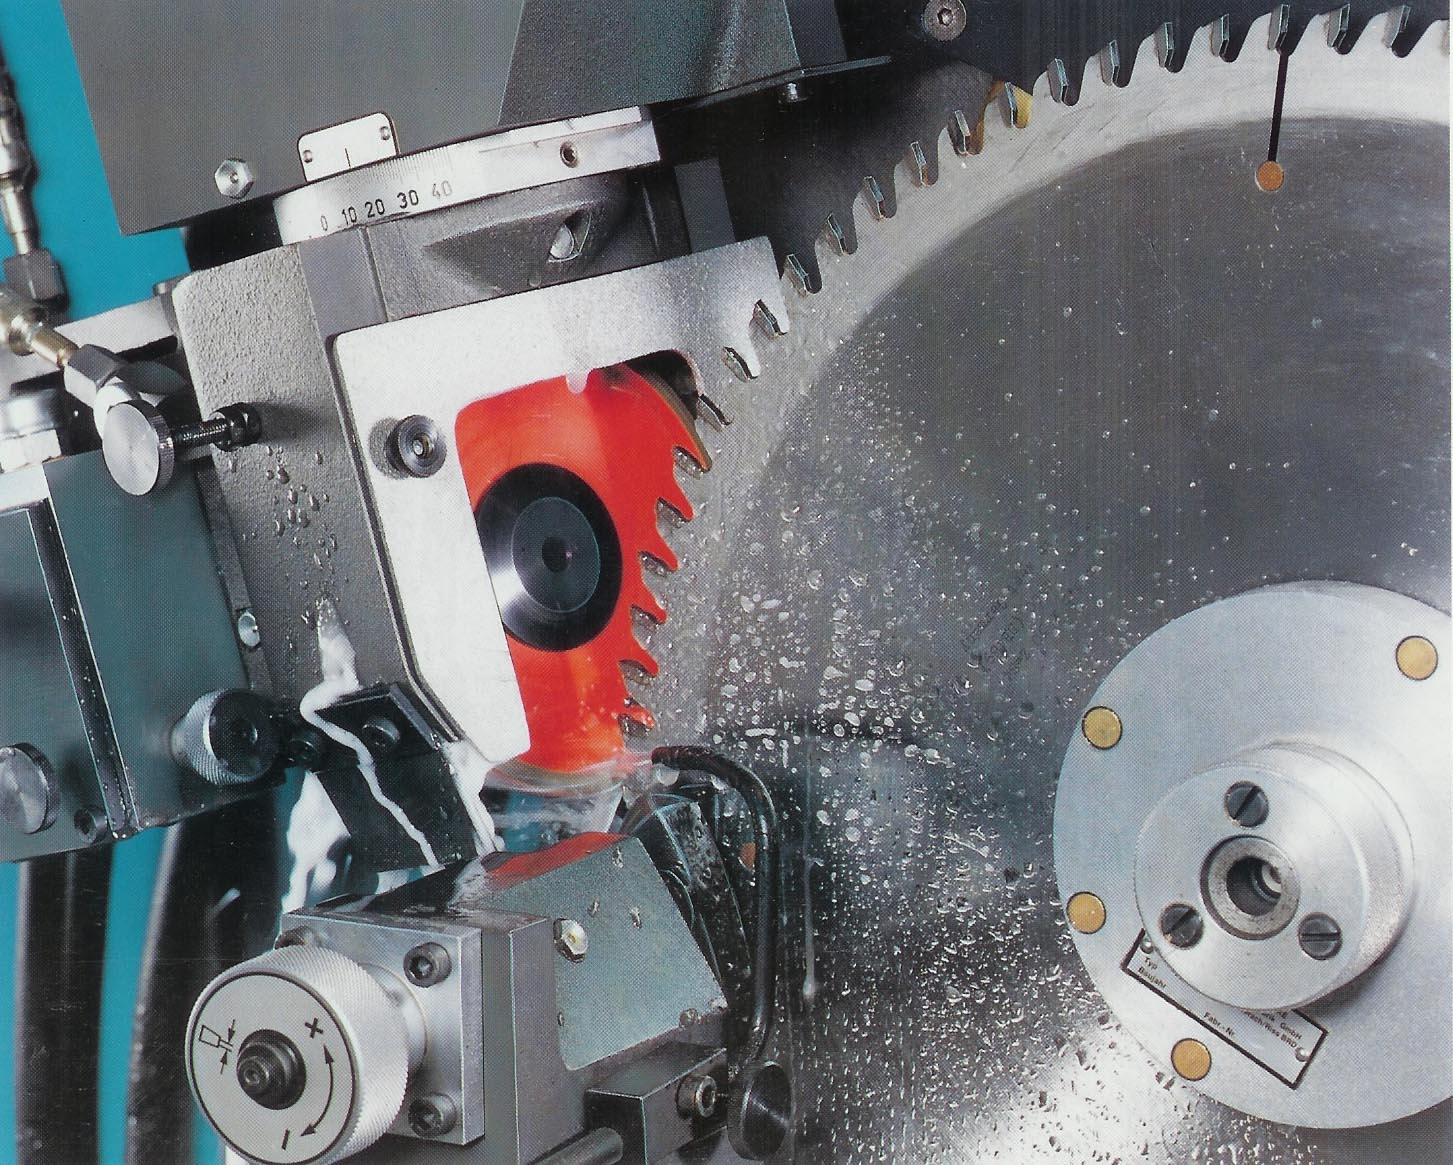 Circular saw blades sharpening